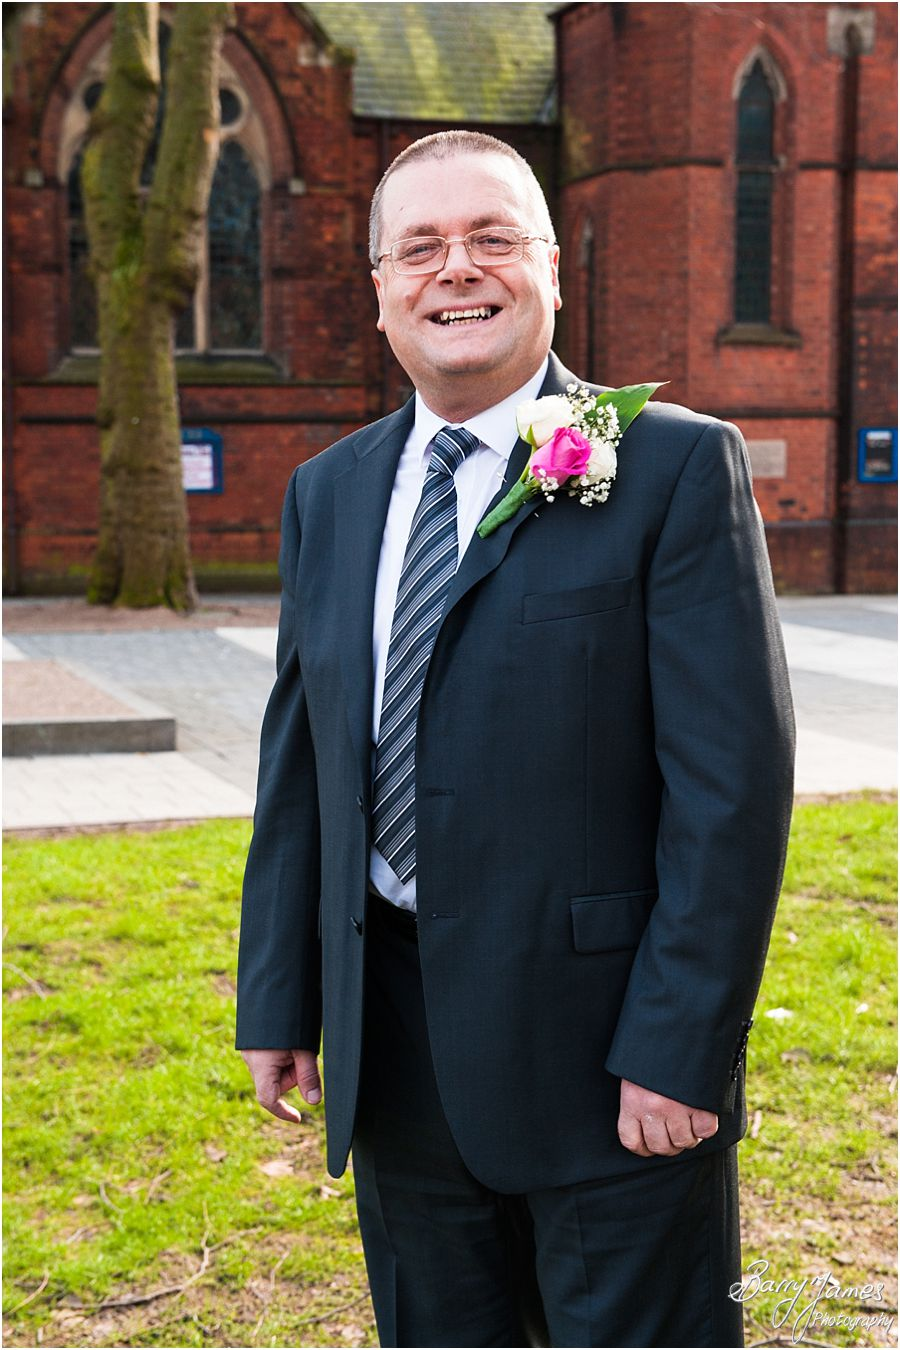 Gorgeous wedding photographs at Walsall Registry Office in Walsall by Walsall Wedding Photographer Barry James